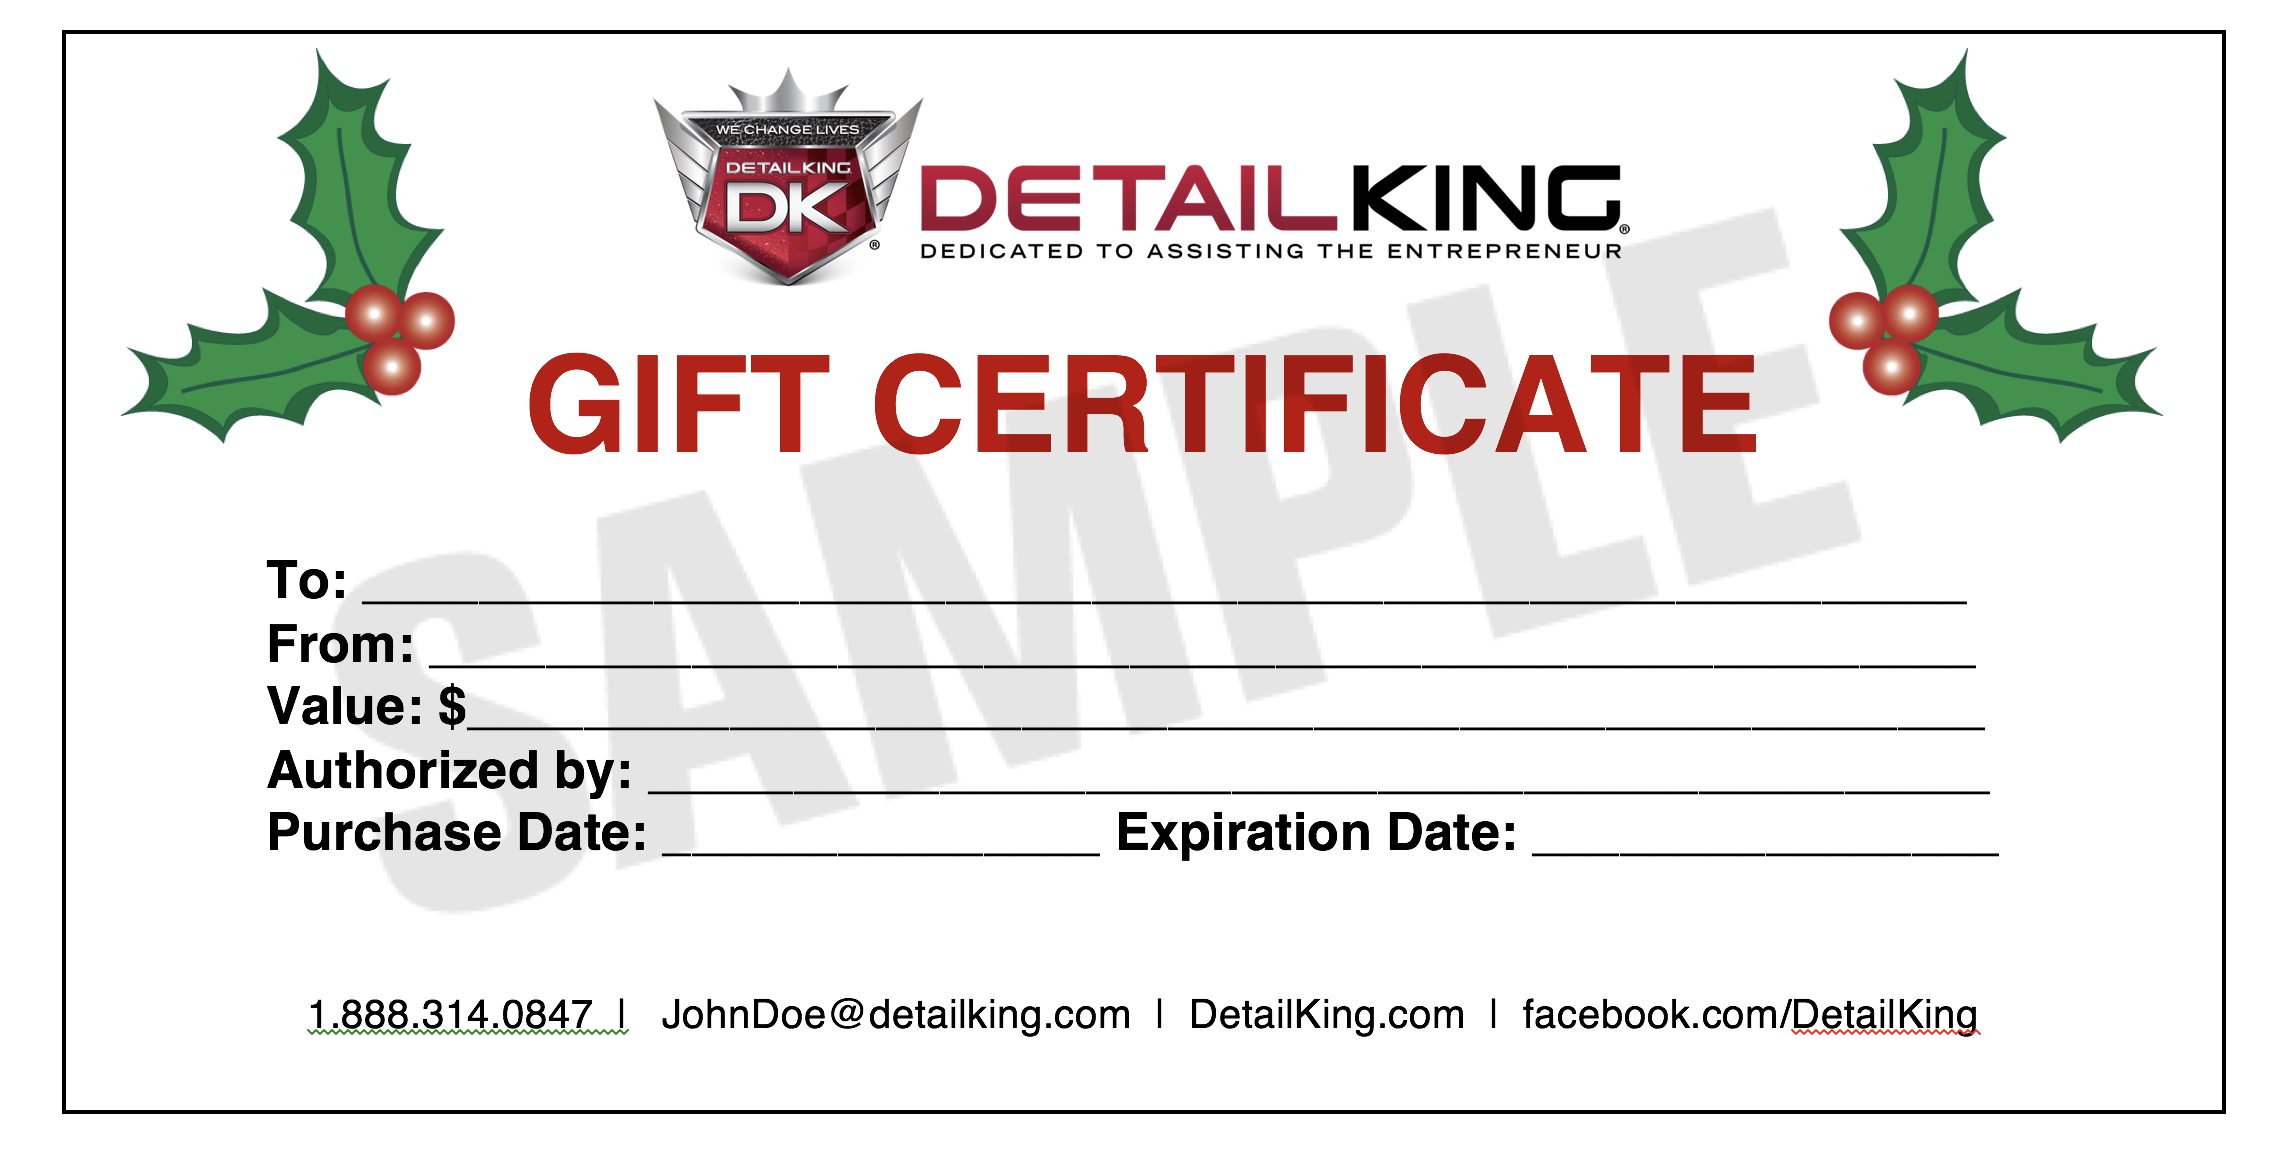 auto detailing gift certificate template - detail king special offers and promotions auto detailing